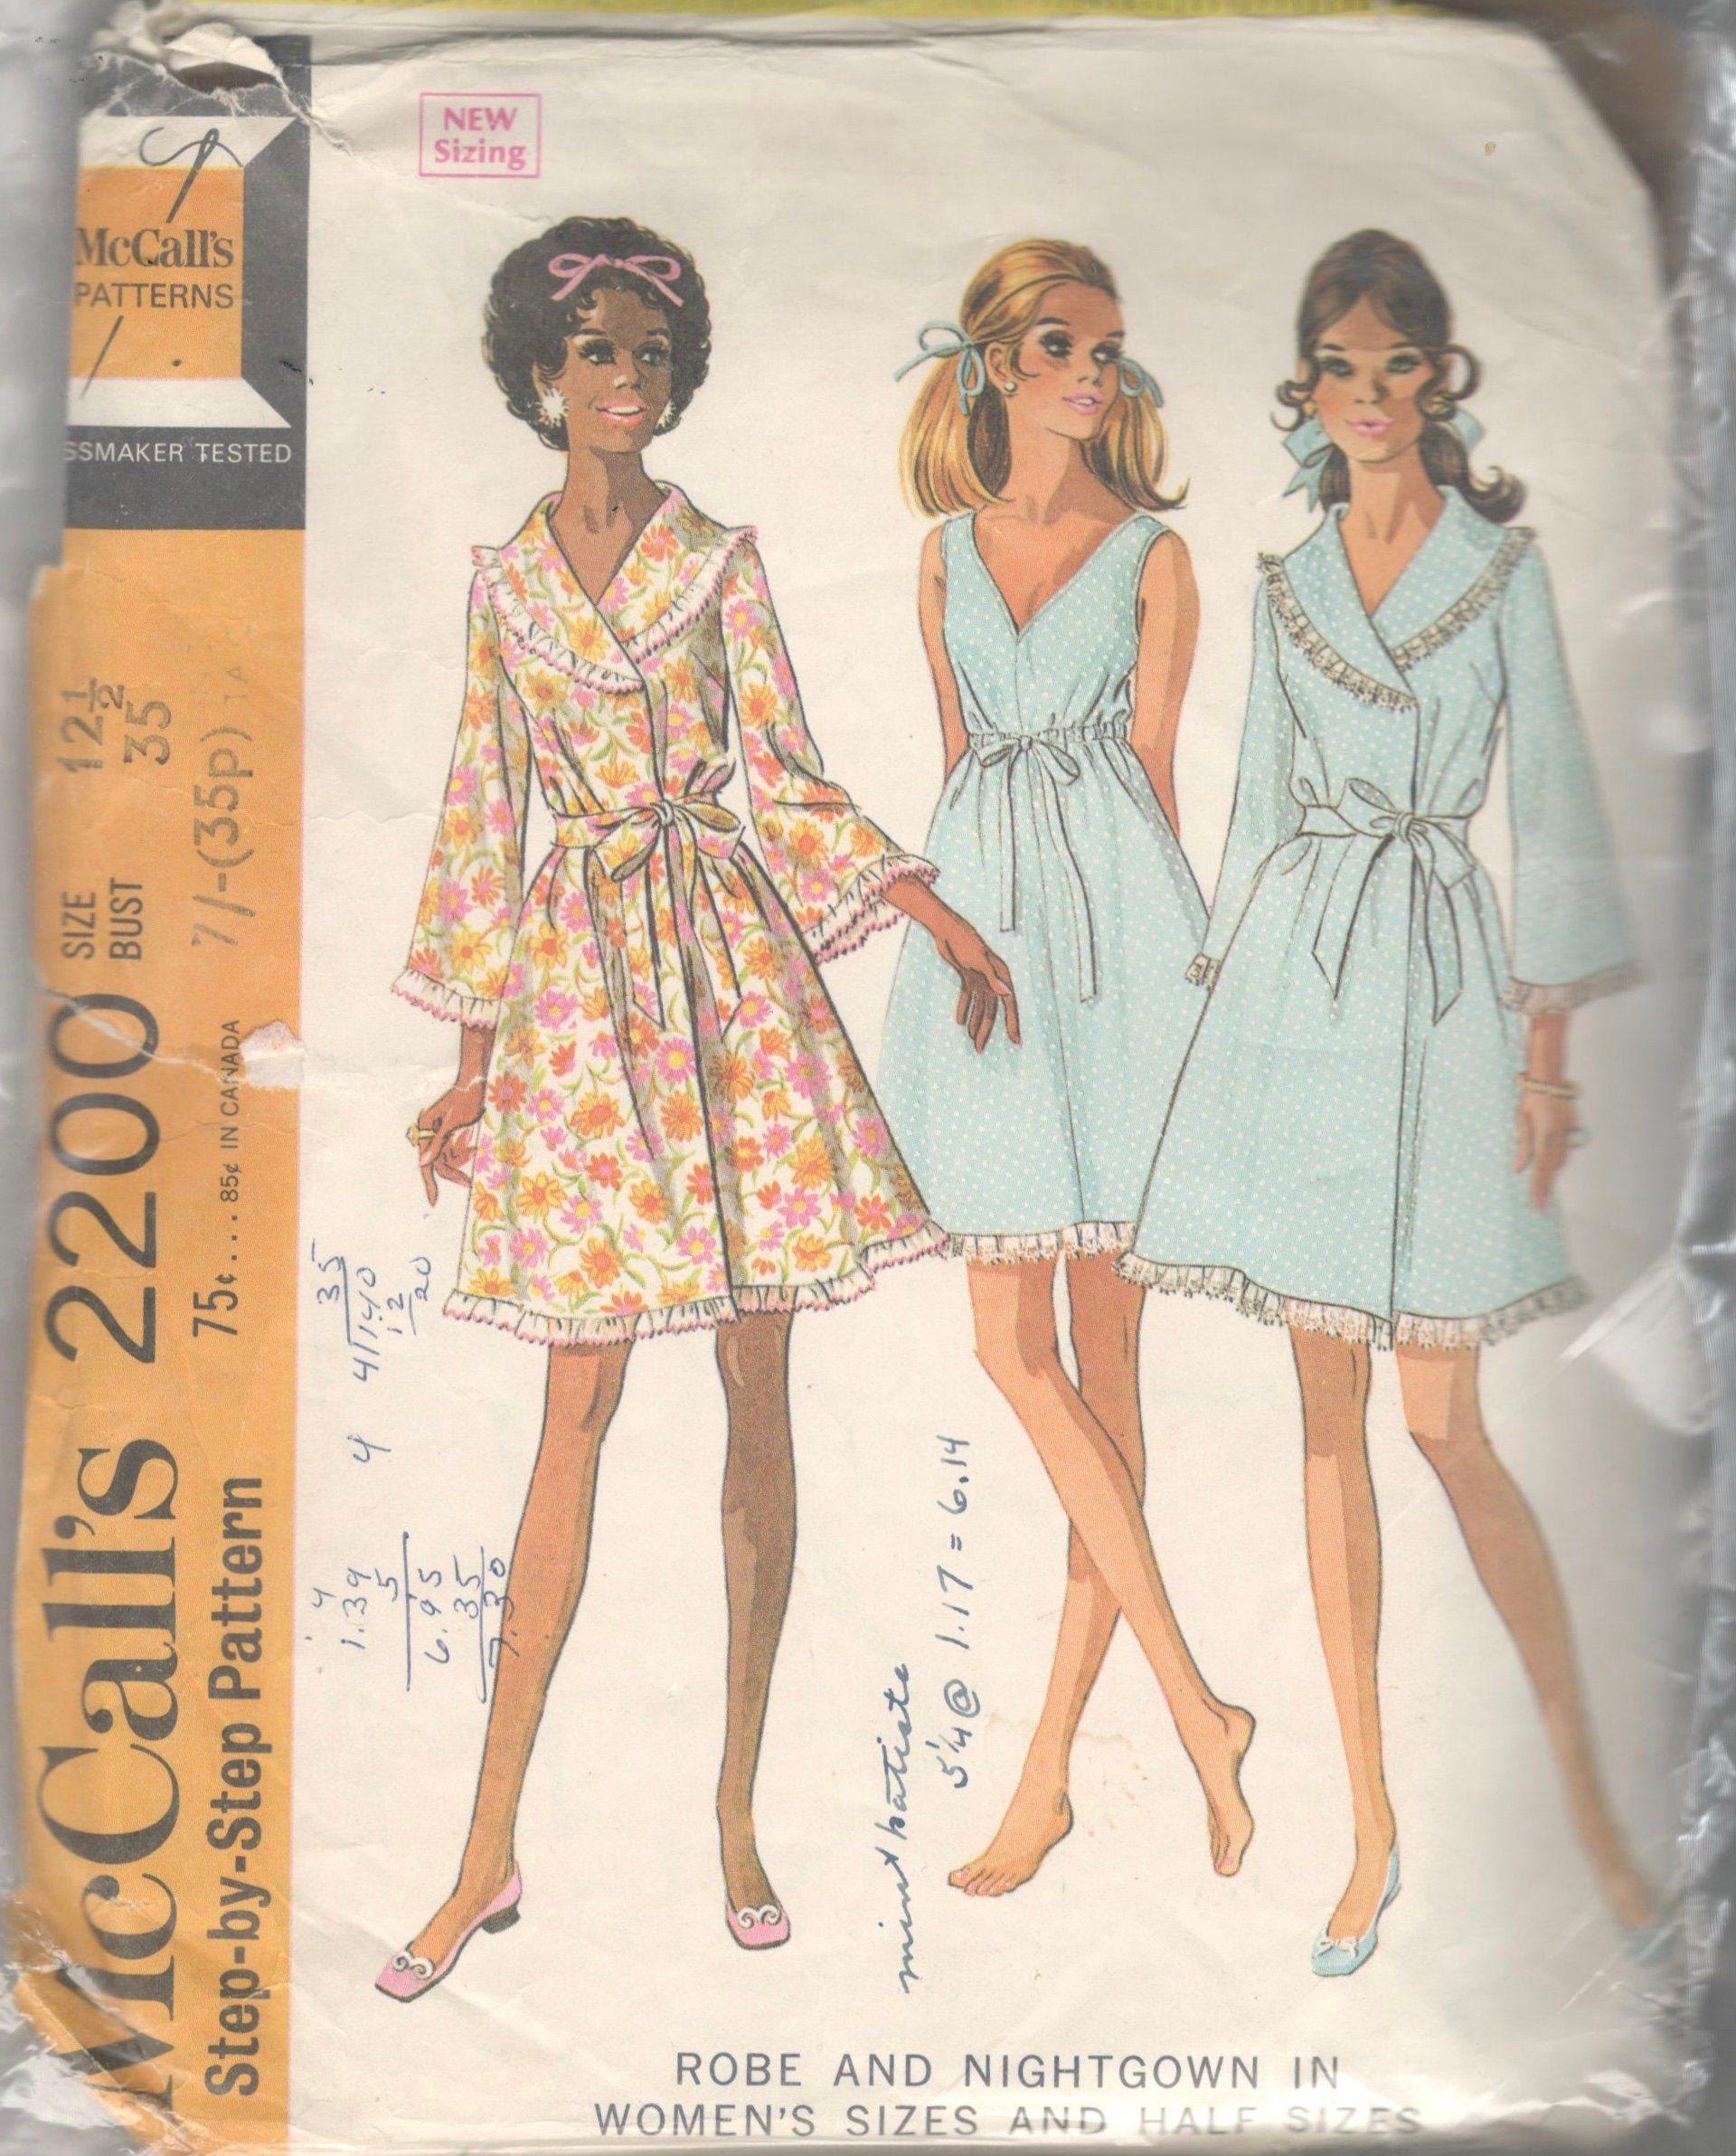 d64e8610dfc McCalls 2200 1960s Front Wrap Robe and Empire V Neck Nightgown Pattern  Womens Half Size Vintage Sewing Pattern Size 12 1/2 Bust 35 Or 20 1/2